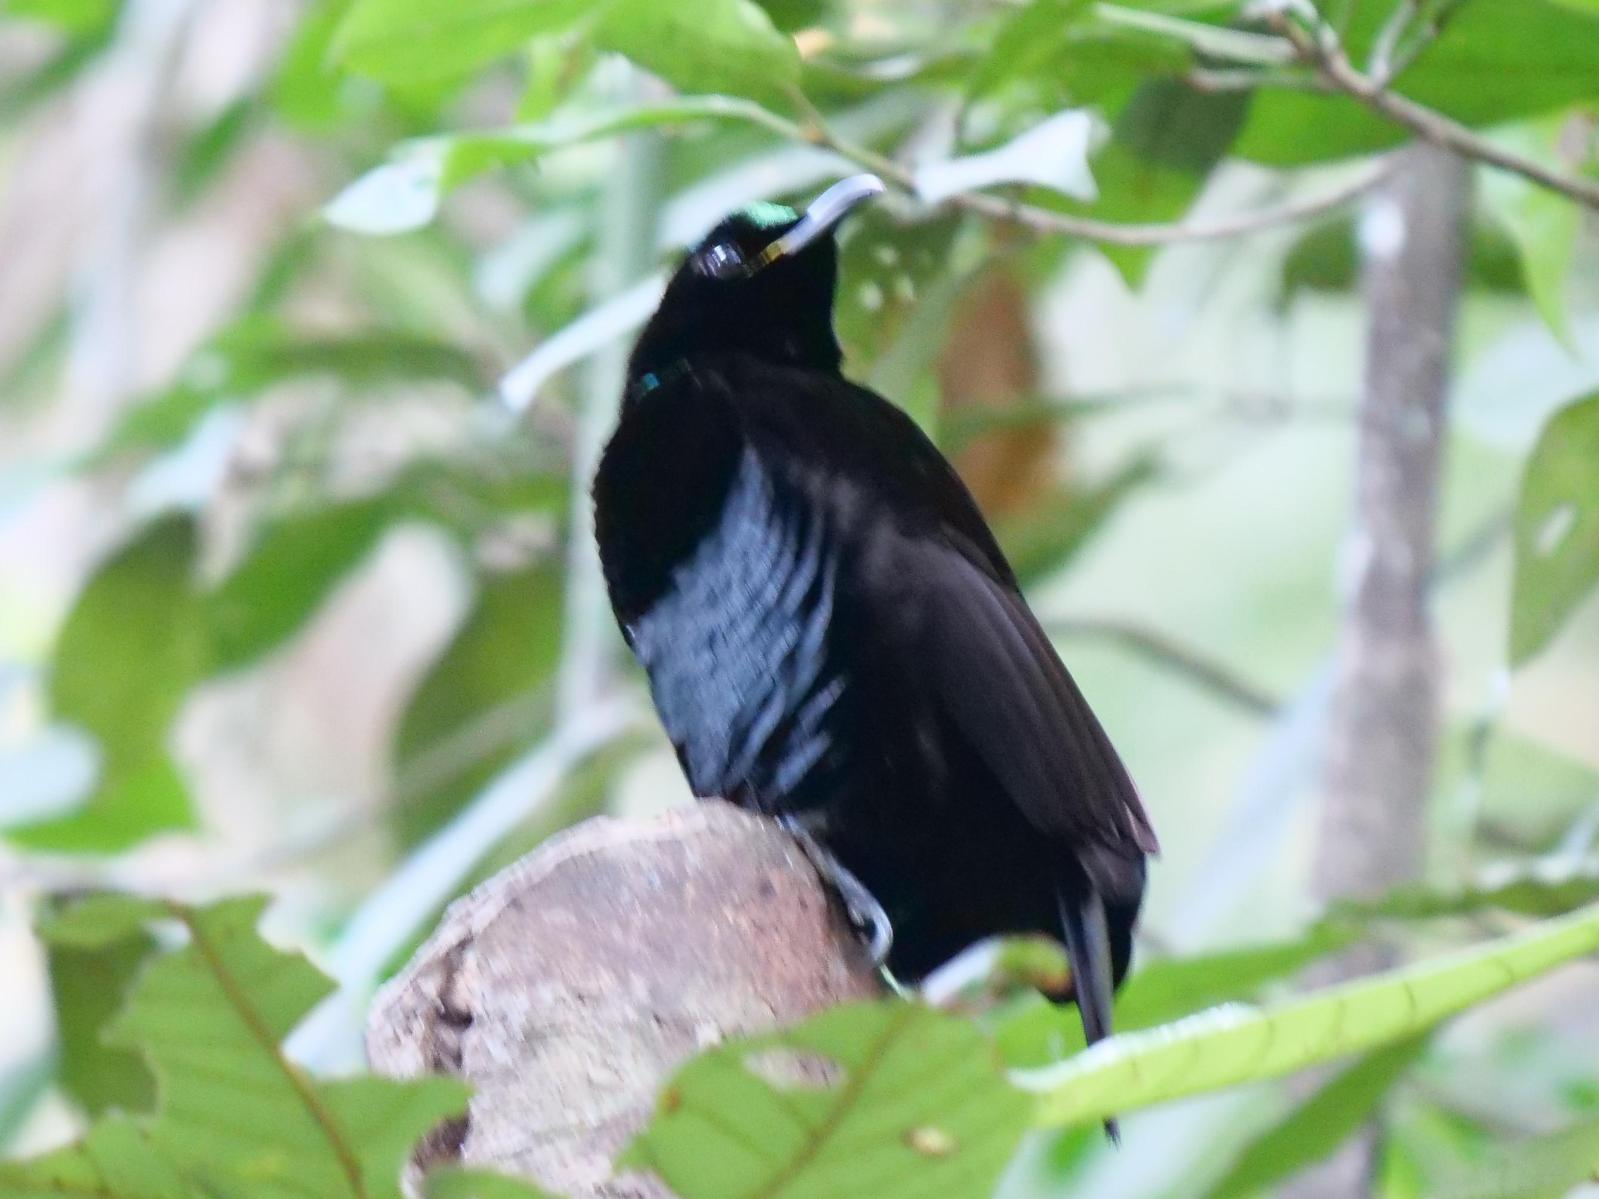 Victoria's Riflebird Photo by Peter Lowe